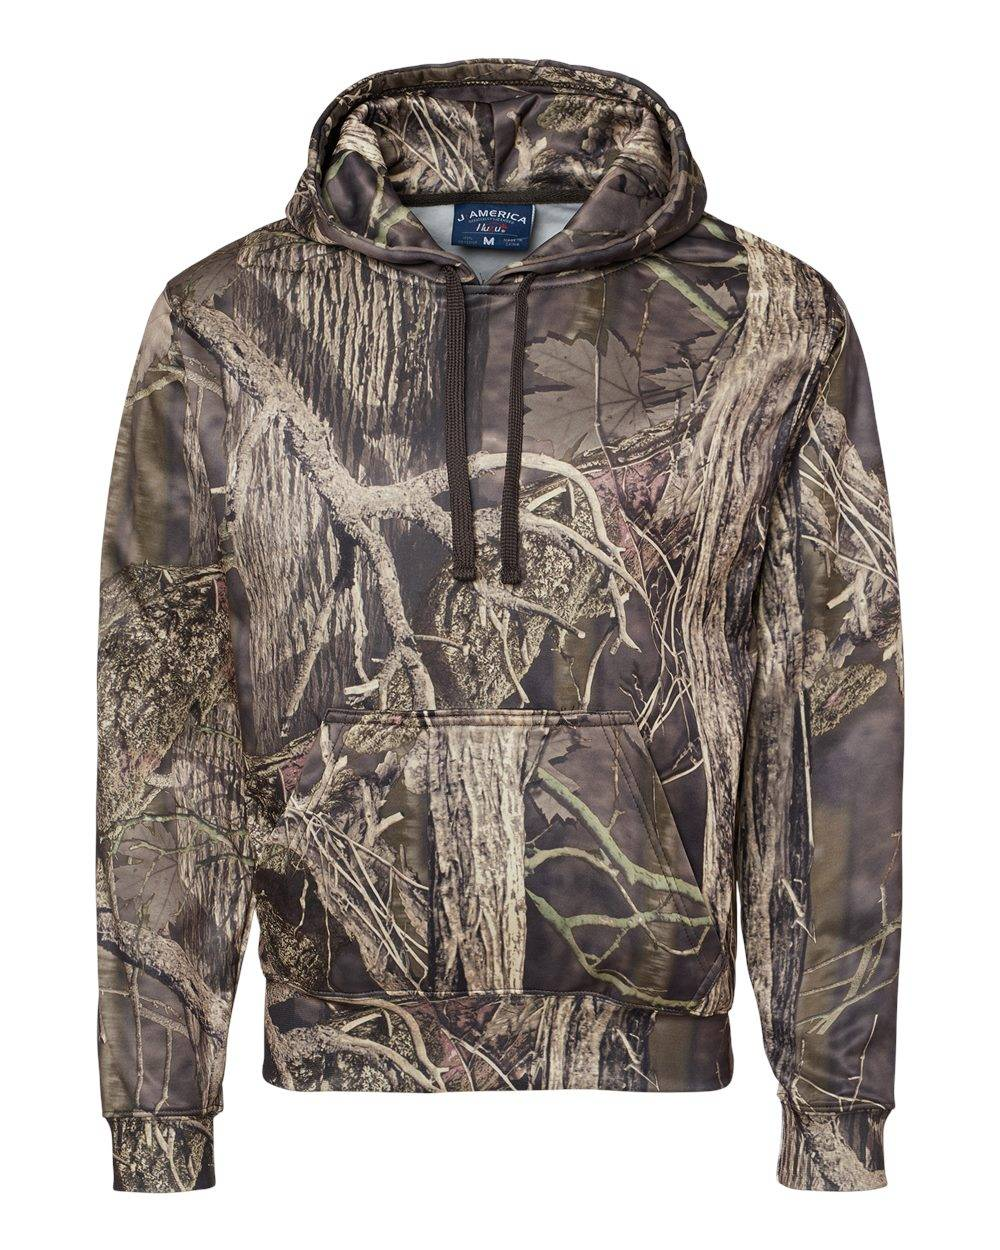 J. America - Polyester Tailgate Hooded Sweatshirt - 8615 - Outdoor Camo - 2X-Large